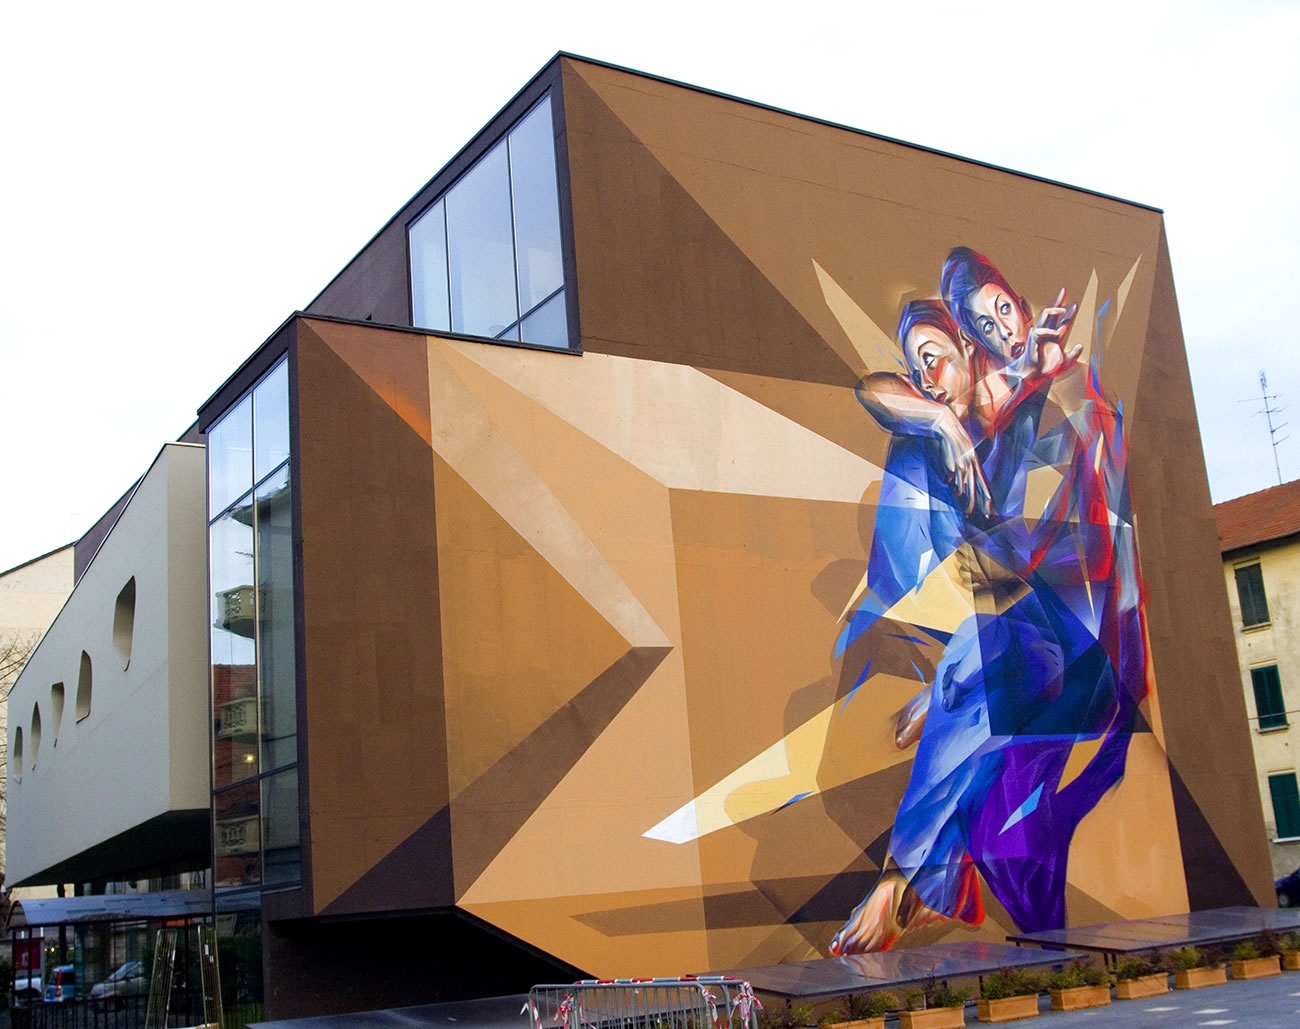 angels on building, mural by vesod